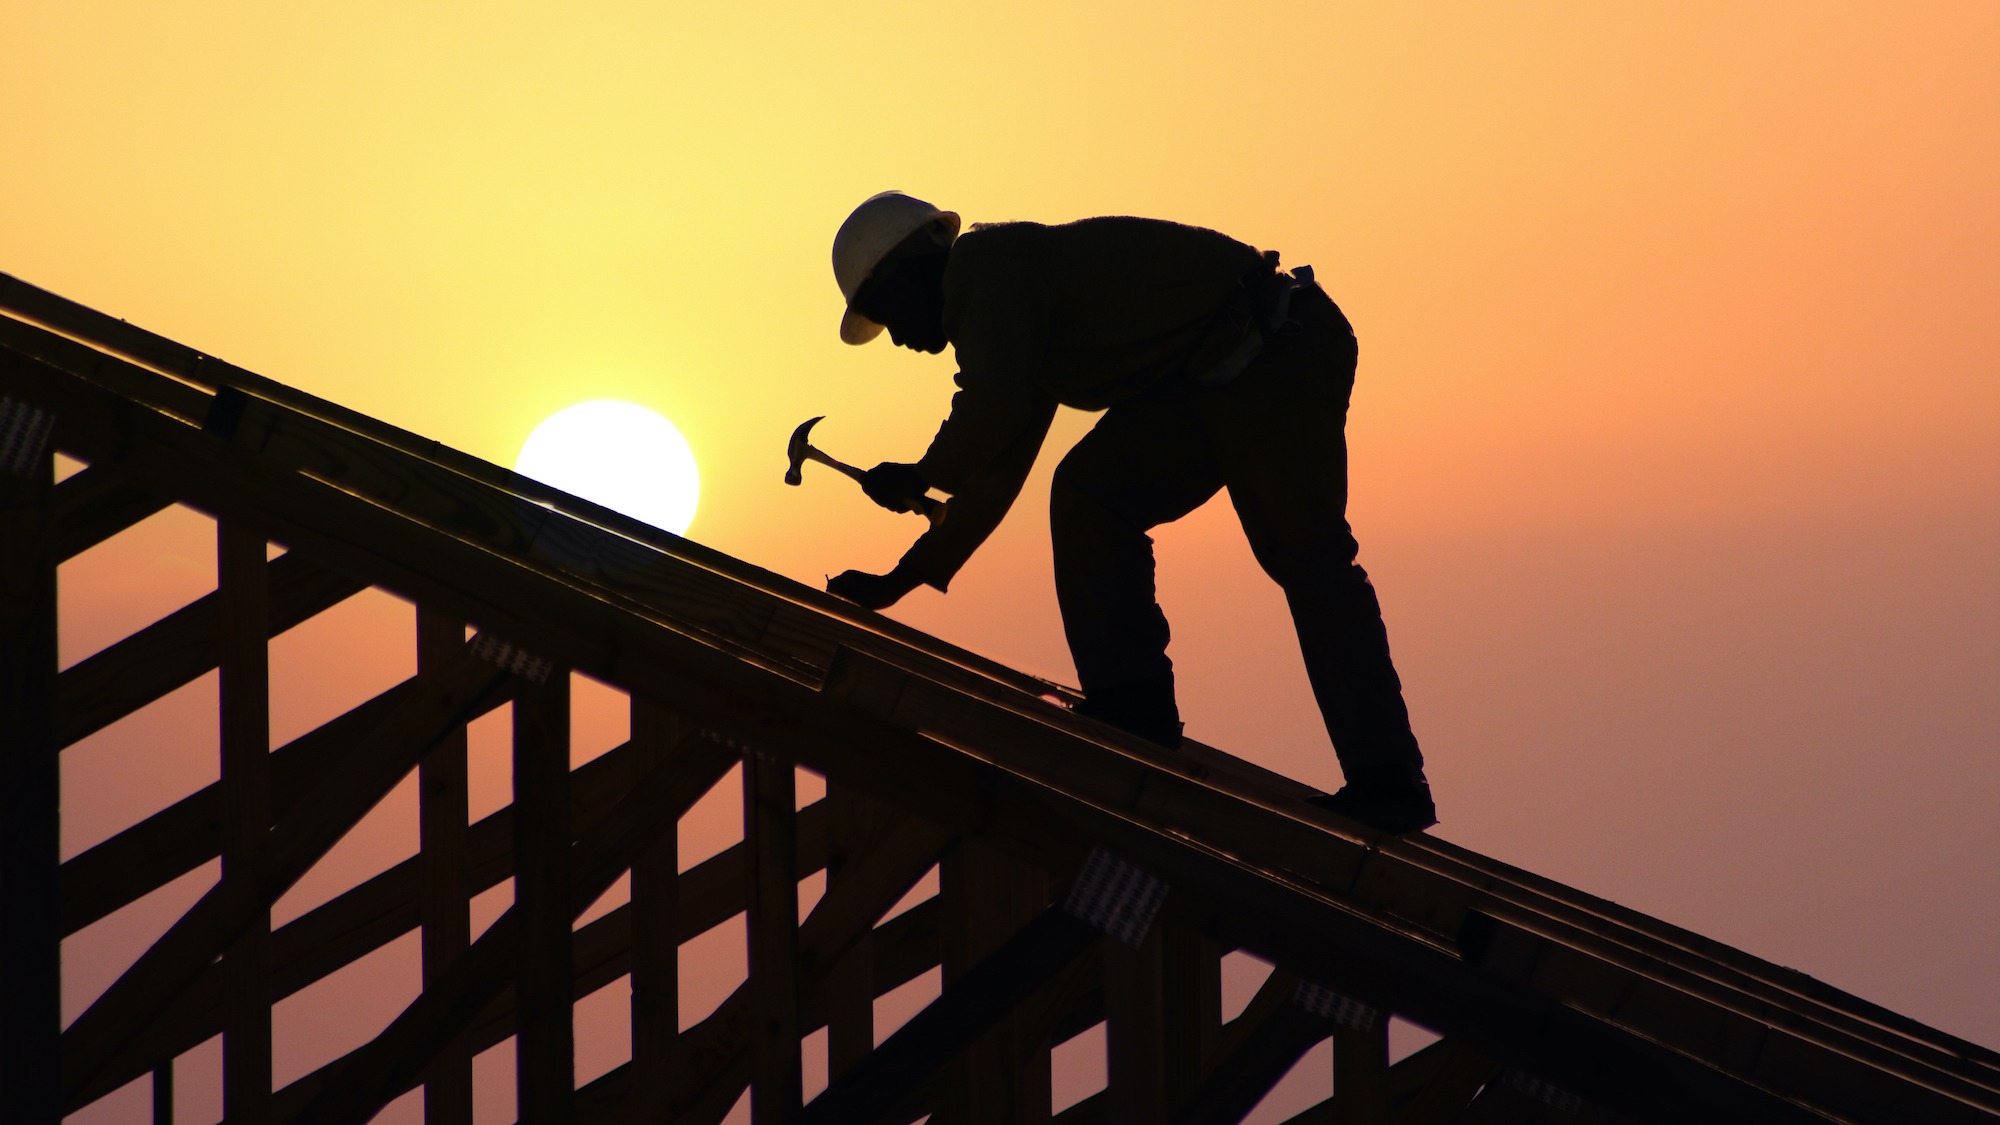 Construction worker on roof